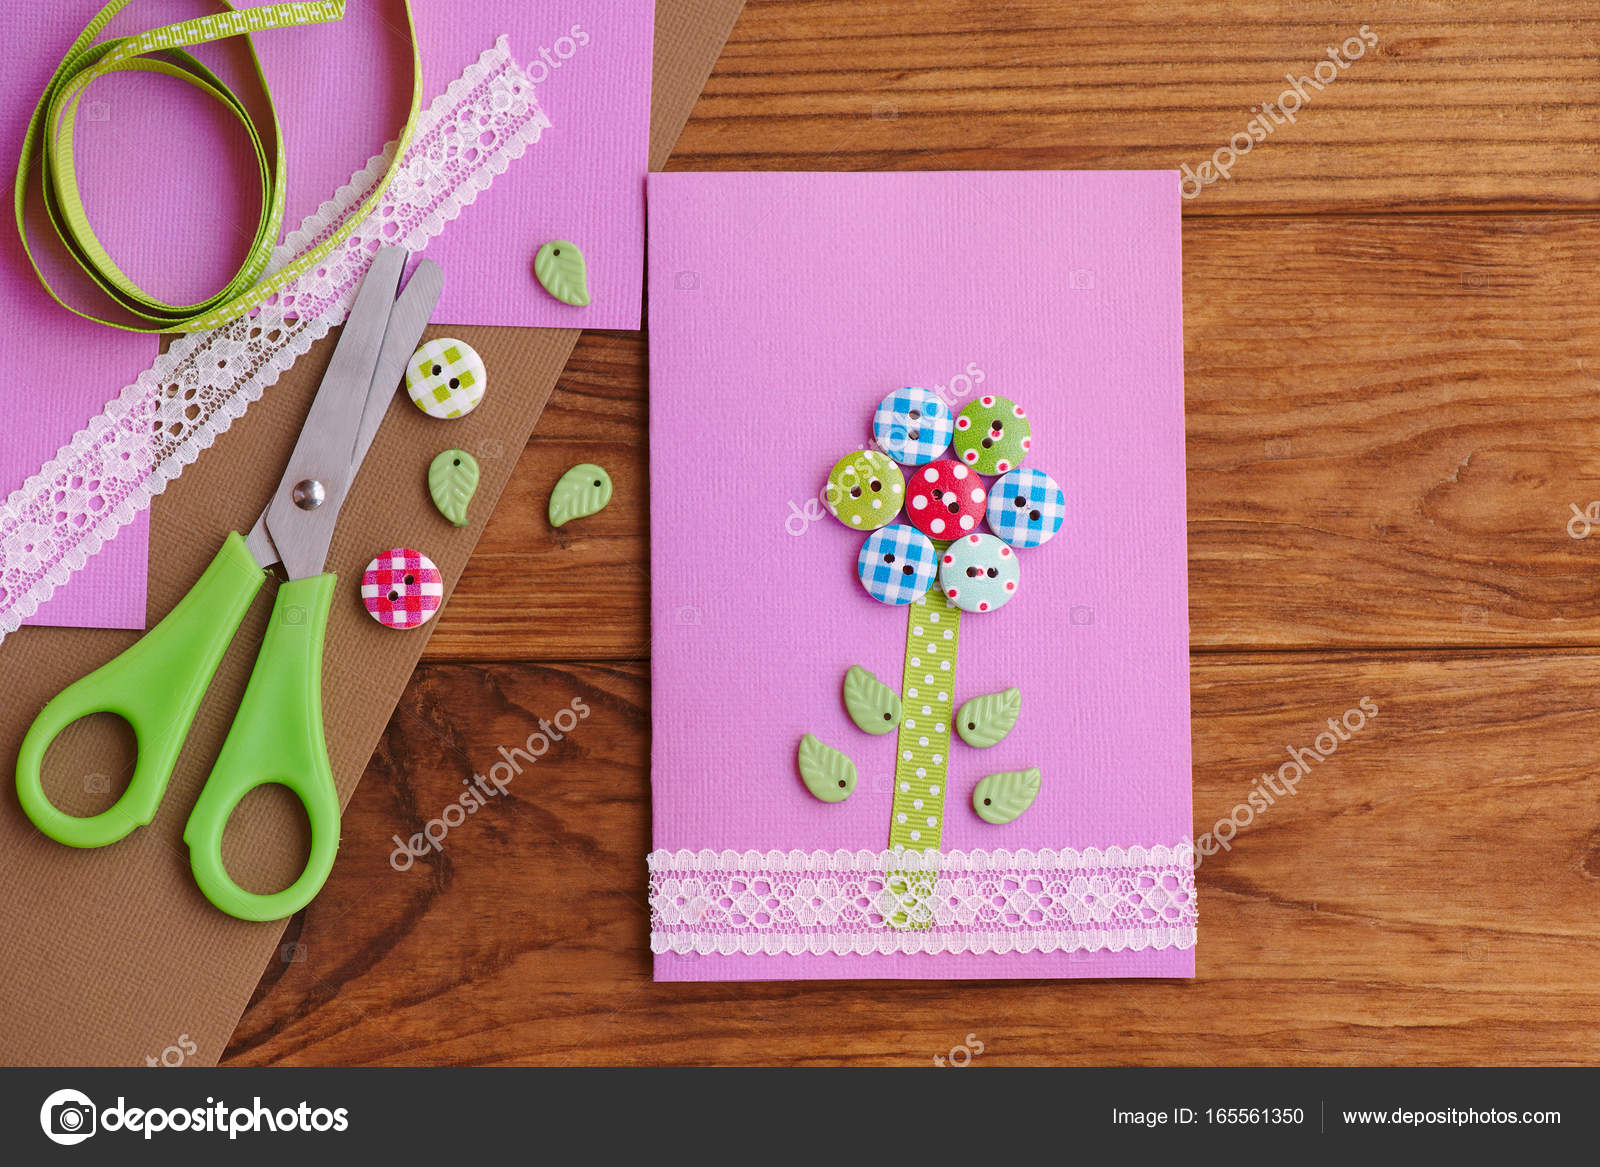 Brilliant Birthday Card Ideas Flowers Greeting Card With A Flower From Funny Birthday Cards Online Alyptdamsfinfo